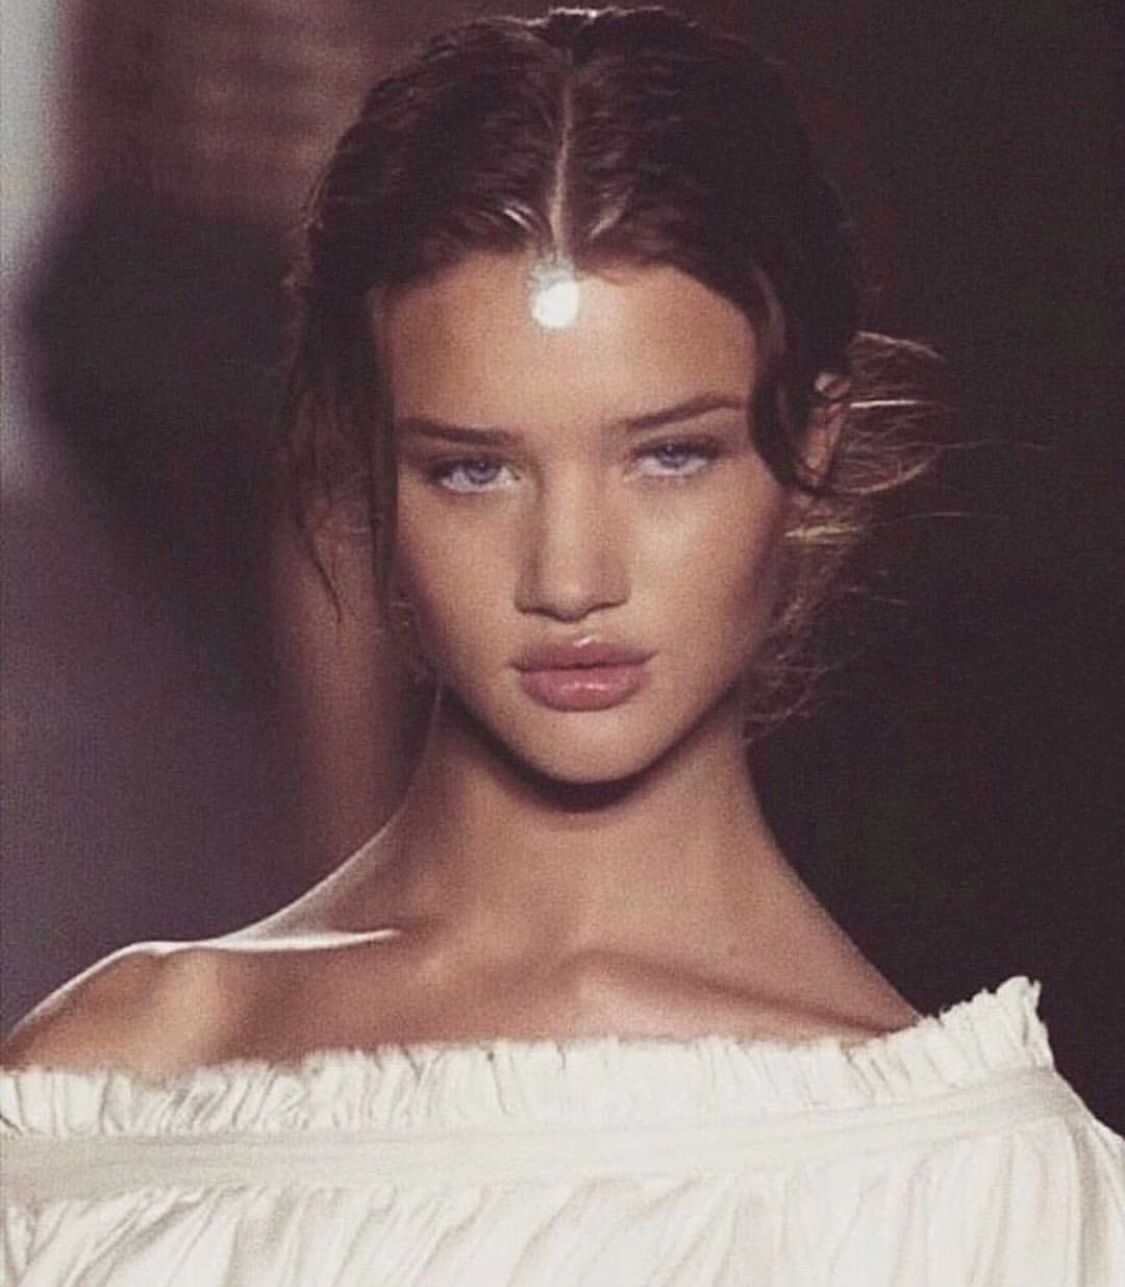 c4ac11375f9 ROSIE HUNTINGTON-WHITELEY YOUNG | BEAUTY in 2019 | Rosie whiteley ...